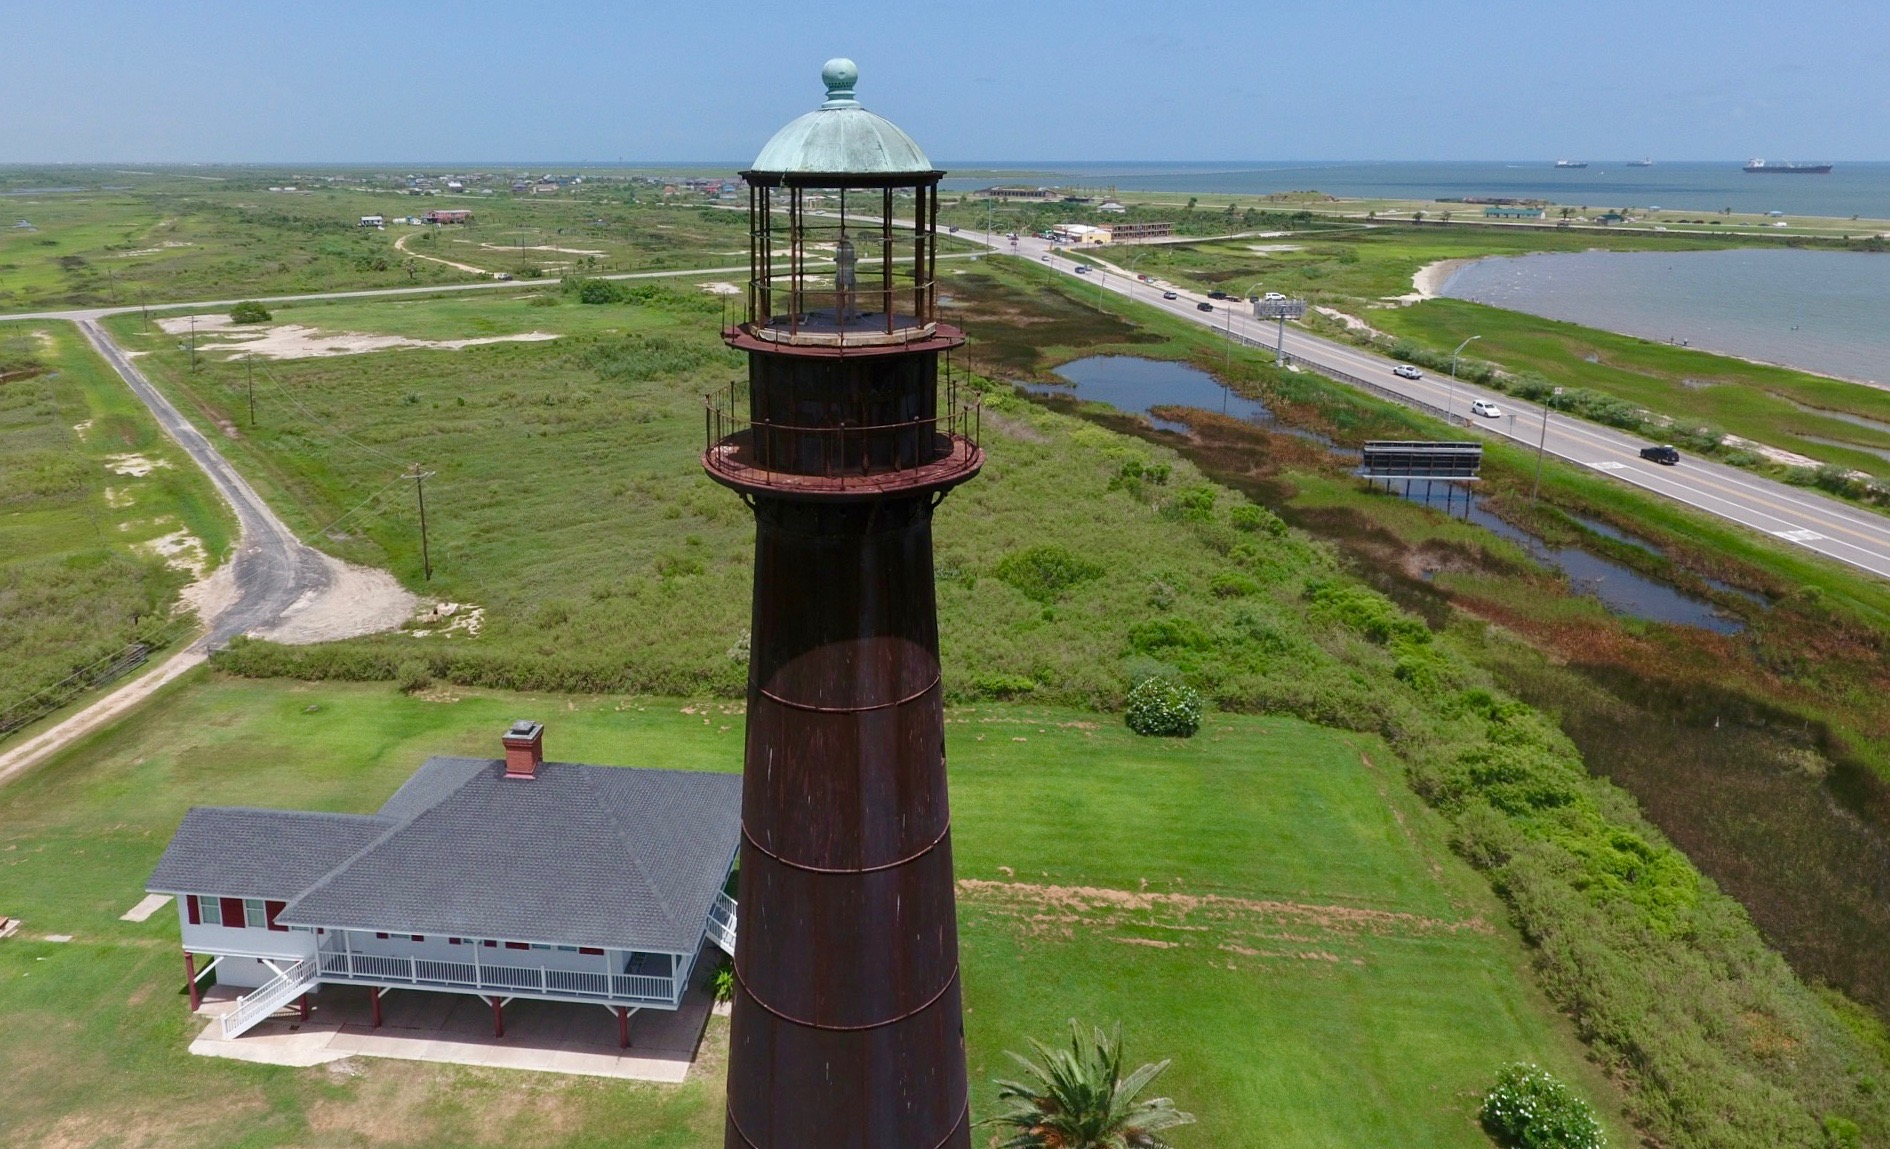 Aerial view of the Bolivar Peninsula Lighthouse in the daytime looking to Bolivar Peninsula. The lighthouse keeper's historic bungalow is below adjacent to Highway 85. The Gulf of Mexico is on the right and the green peninsula is center and left.